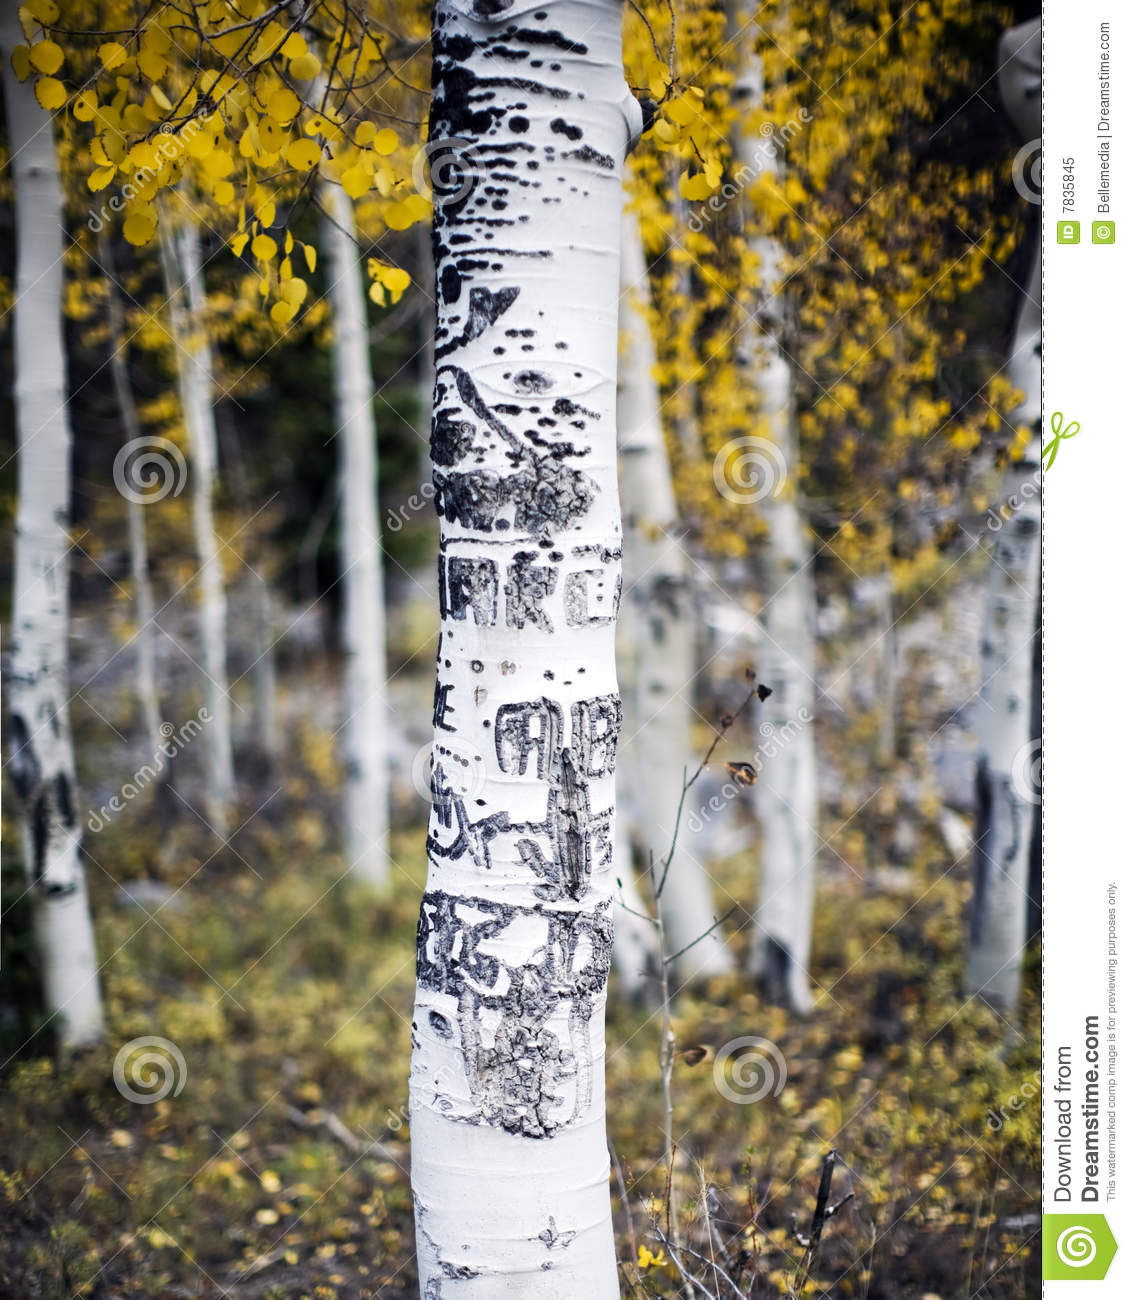 Aspen tree with carvings royalty free stock photo image